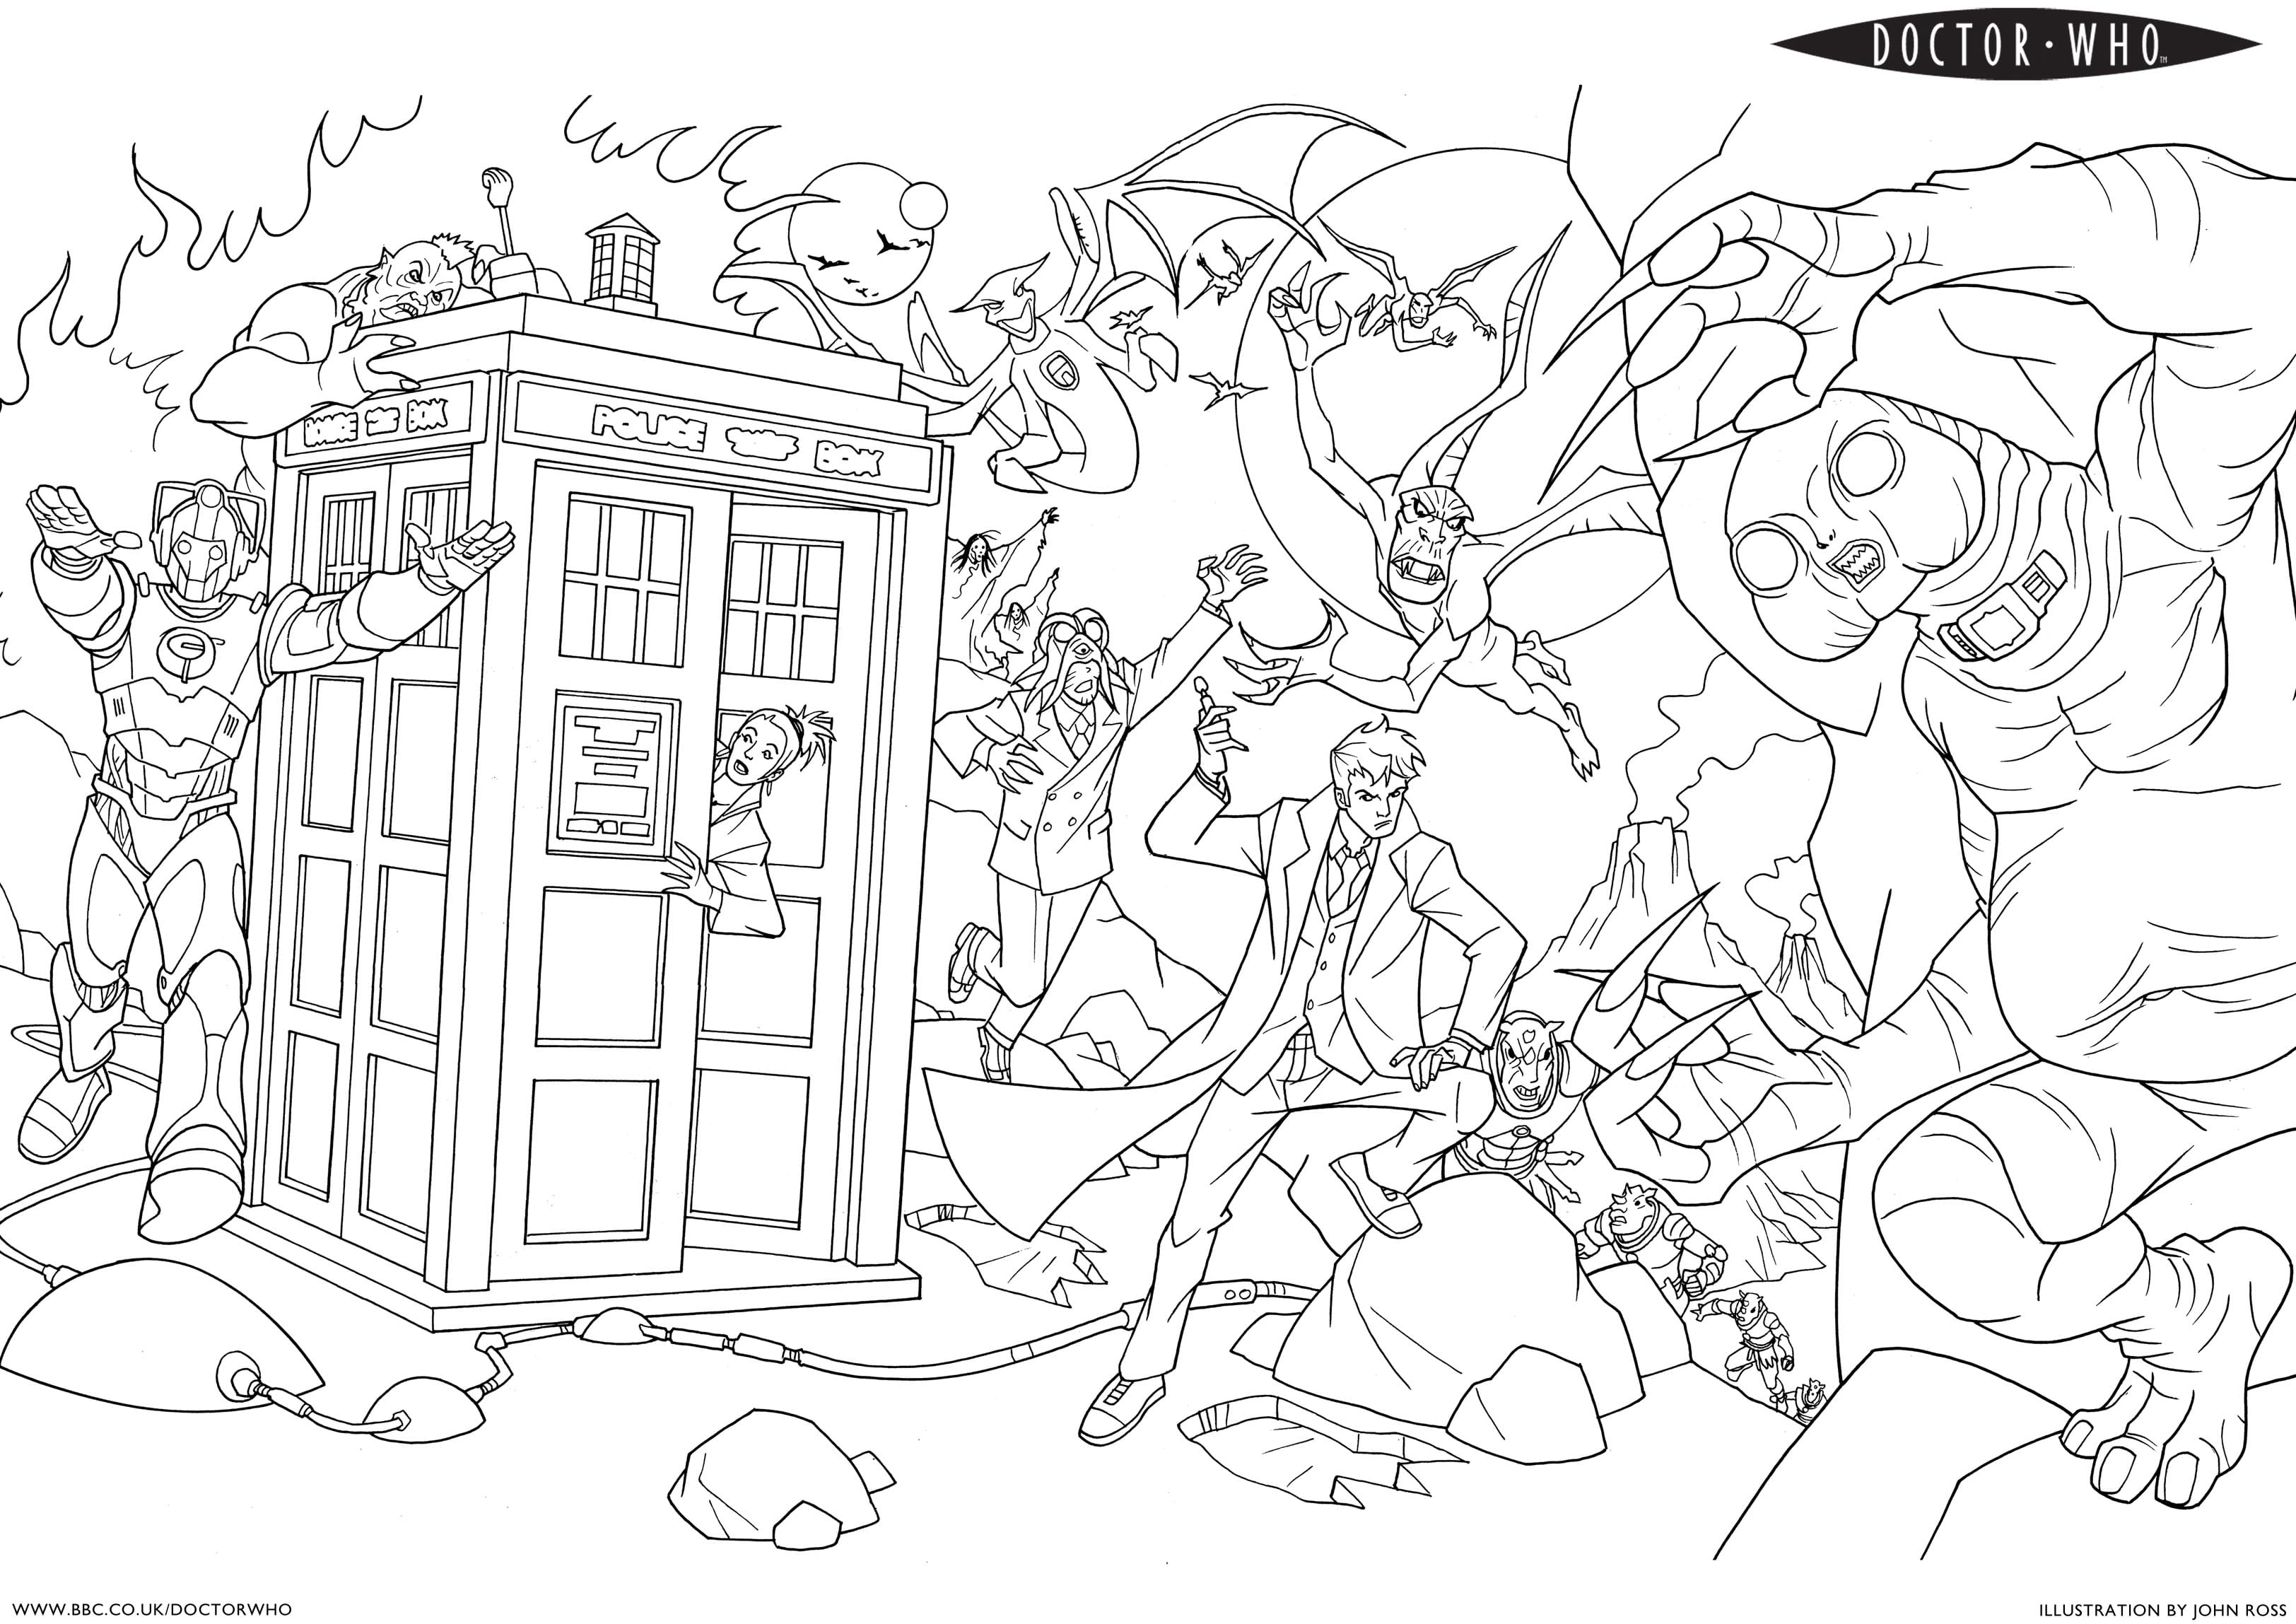 Dr Who Coloring Pages Printable Coloring Image Color Online 24306